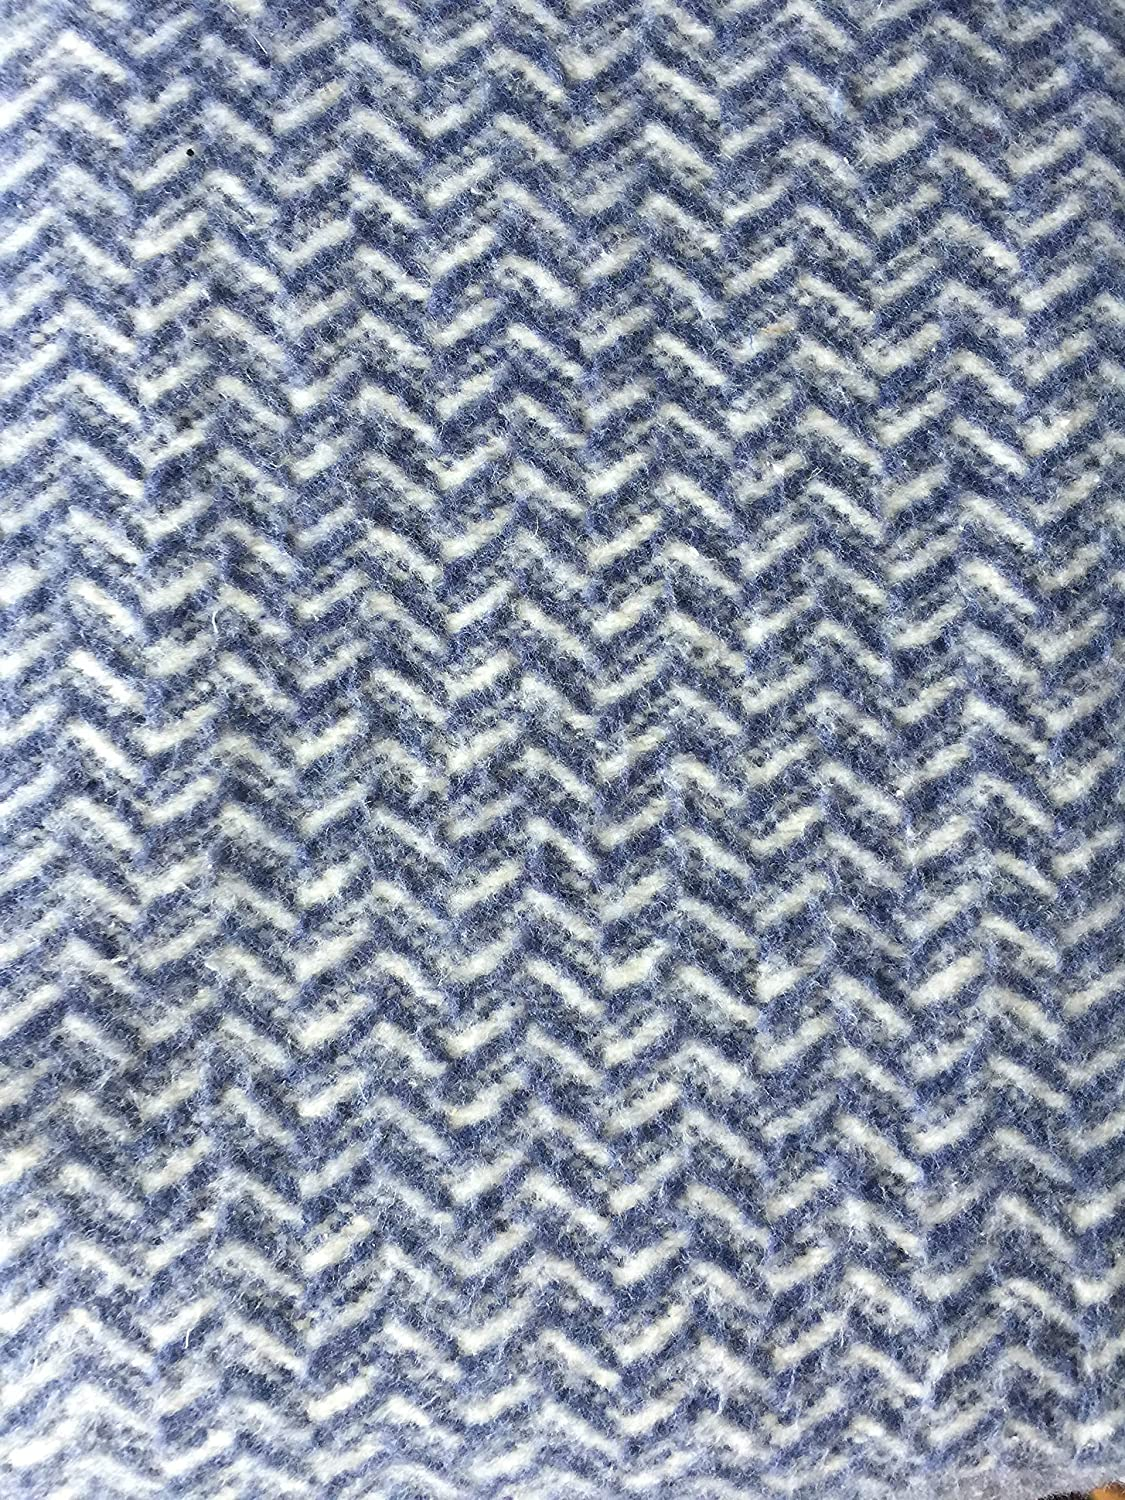 Roca Home Bed Blanket Herringbone Pattern in Shades of White with Darker Blue Herringbone Stripes and Smooth Sewn Edge Made in Portugal (Queen)